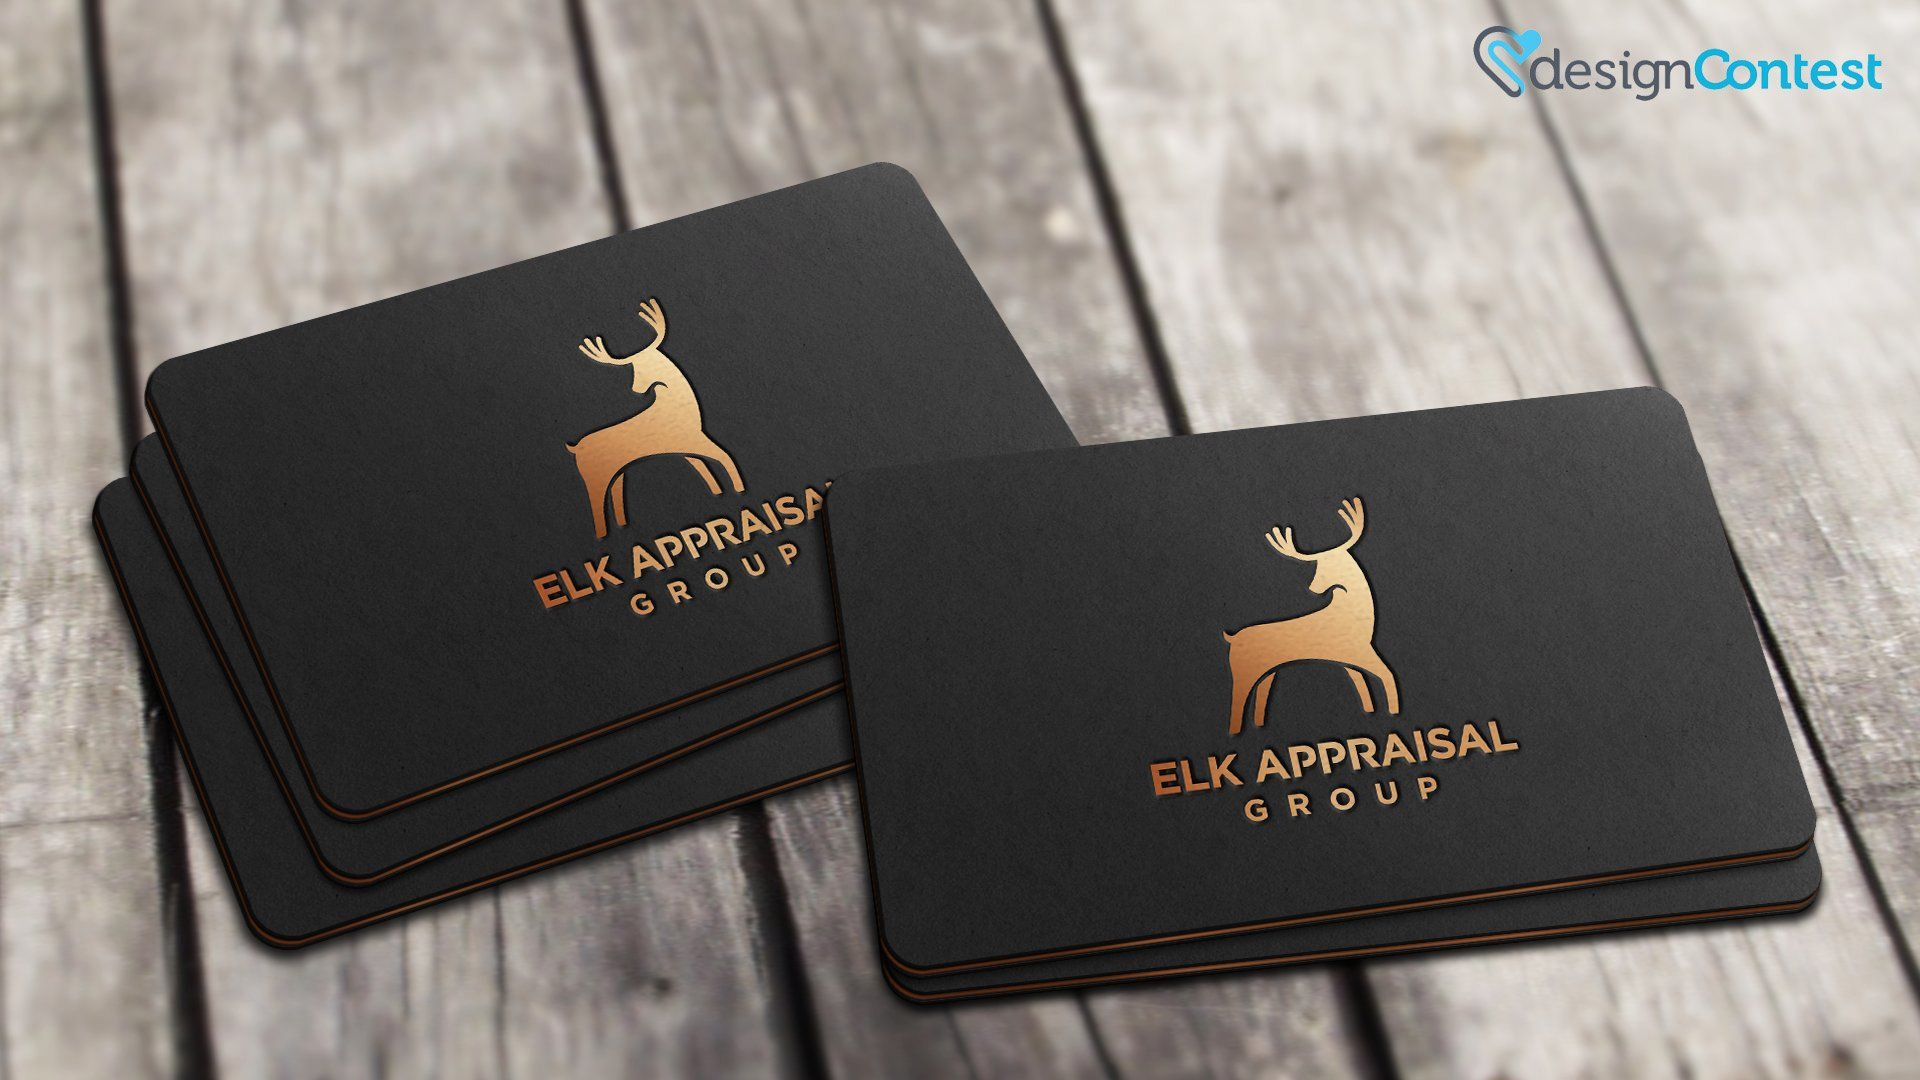 redlogo-business-card-design-with-DesignContest2.jpg (1920×1080 ...